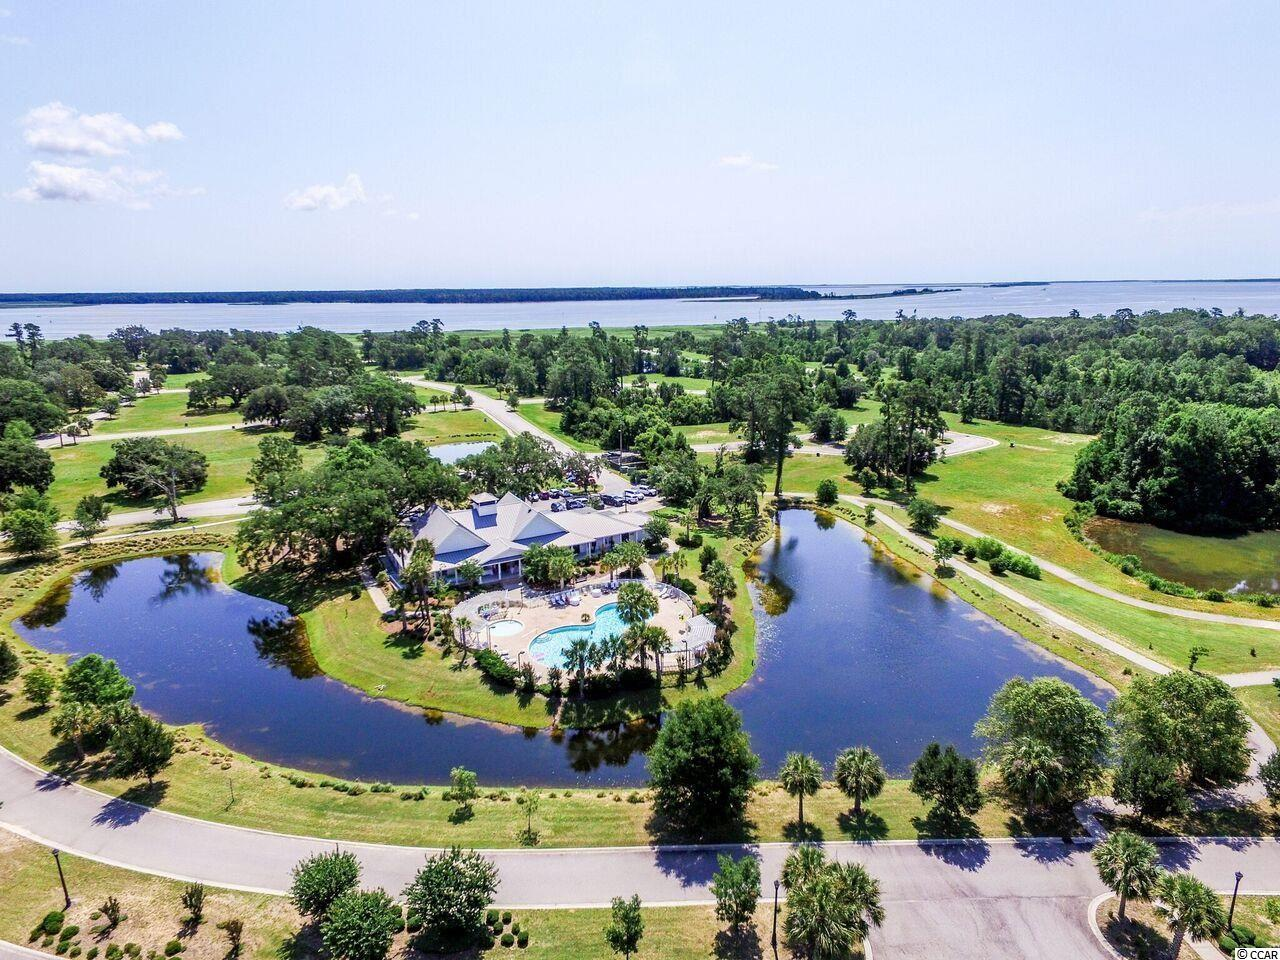 South Island Plantation...A gated community situated along Winyah Bay and the Intracoastal Waterway and located near Historic Georgetown, SC. The community amenities include a pool, kiddie pool and hot tub. There is also a 5000 sq ft club house with an equipped fitness center, a bar and a full kitchen. Walking trails wind throughout the community with gazebos for periodic resting. Afishing/crabbin' gazebo is now complete and offers incredible views of the bay. A secured RV/ Boat storage area is available for property owners. Huge oak trees and beautiful lakes make this one of the premier communities in the area. Build your dream home today.